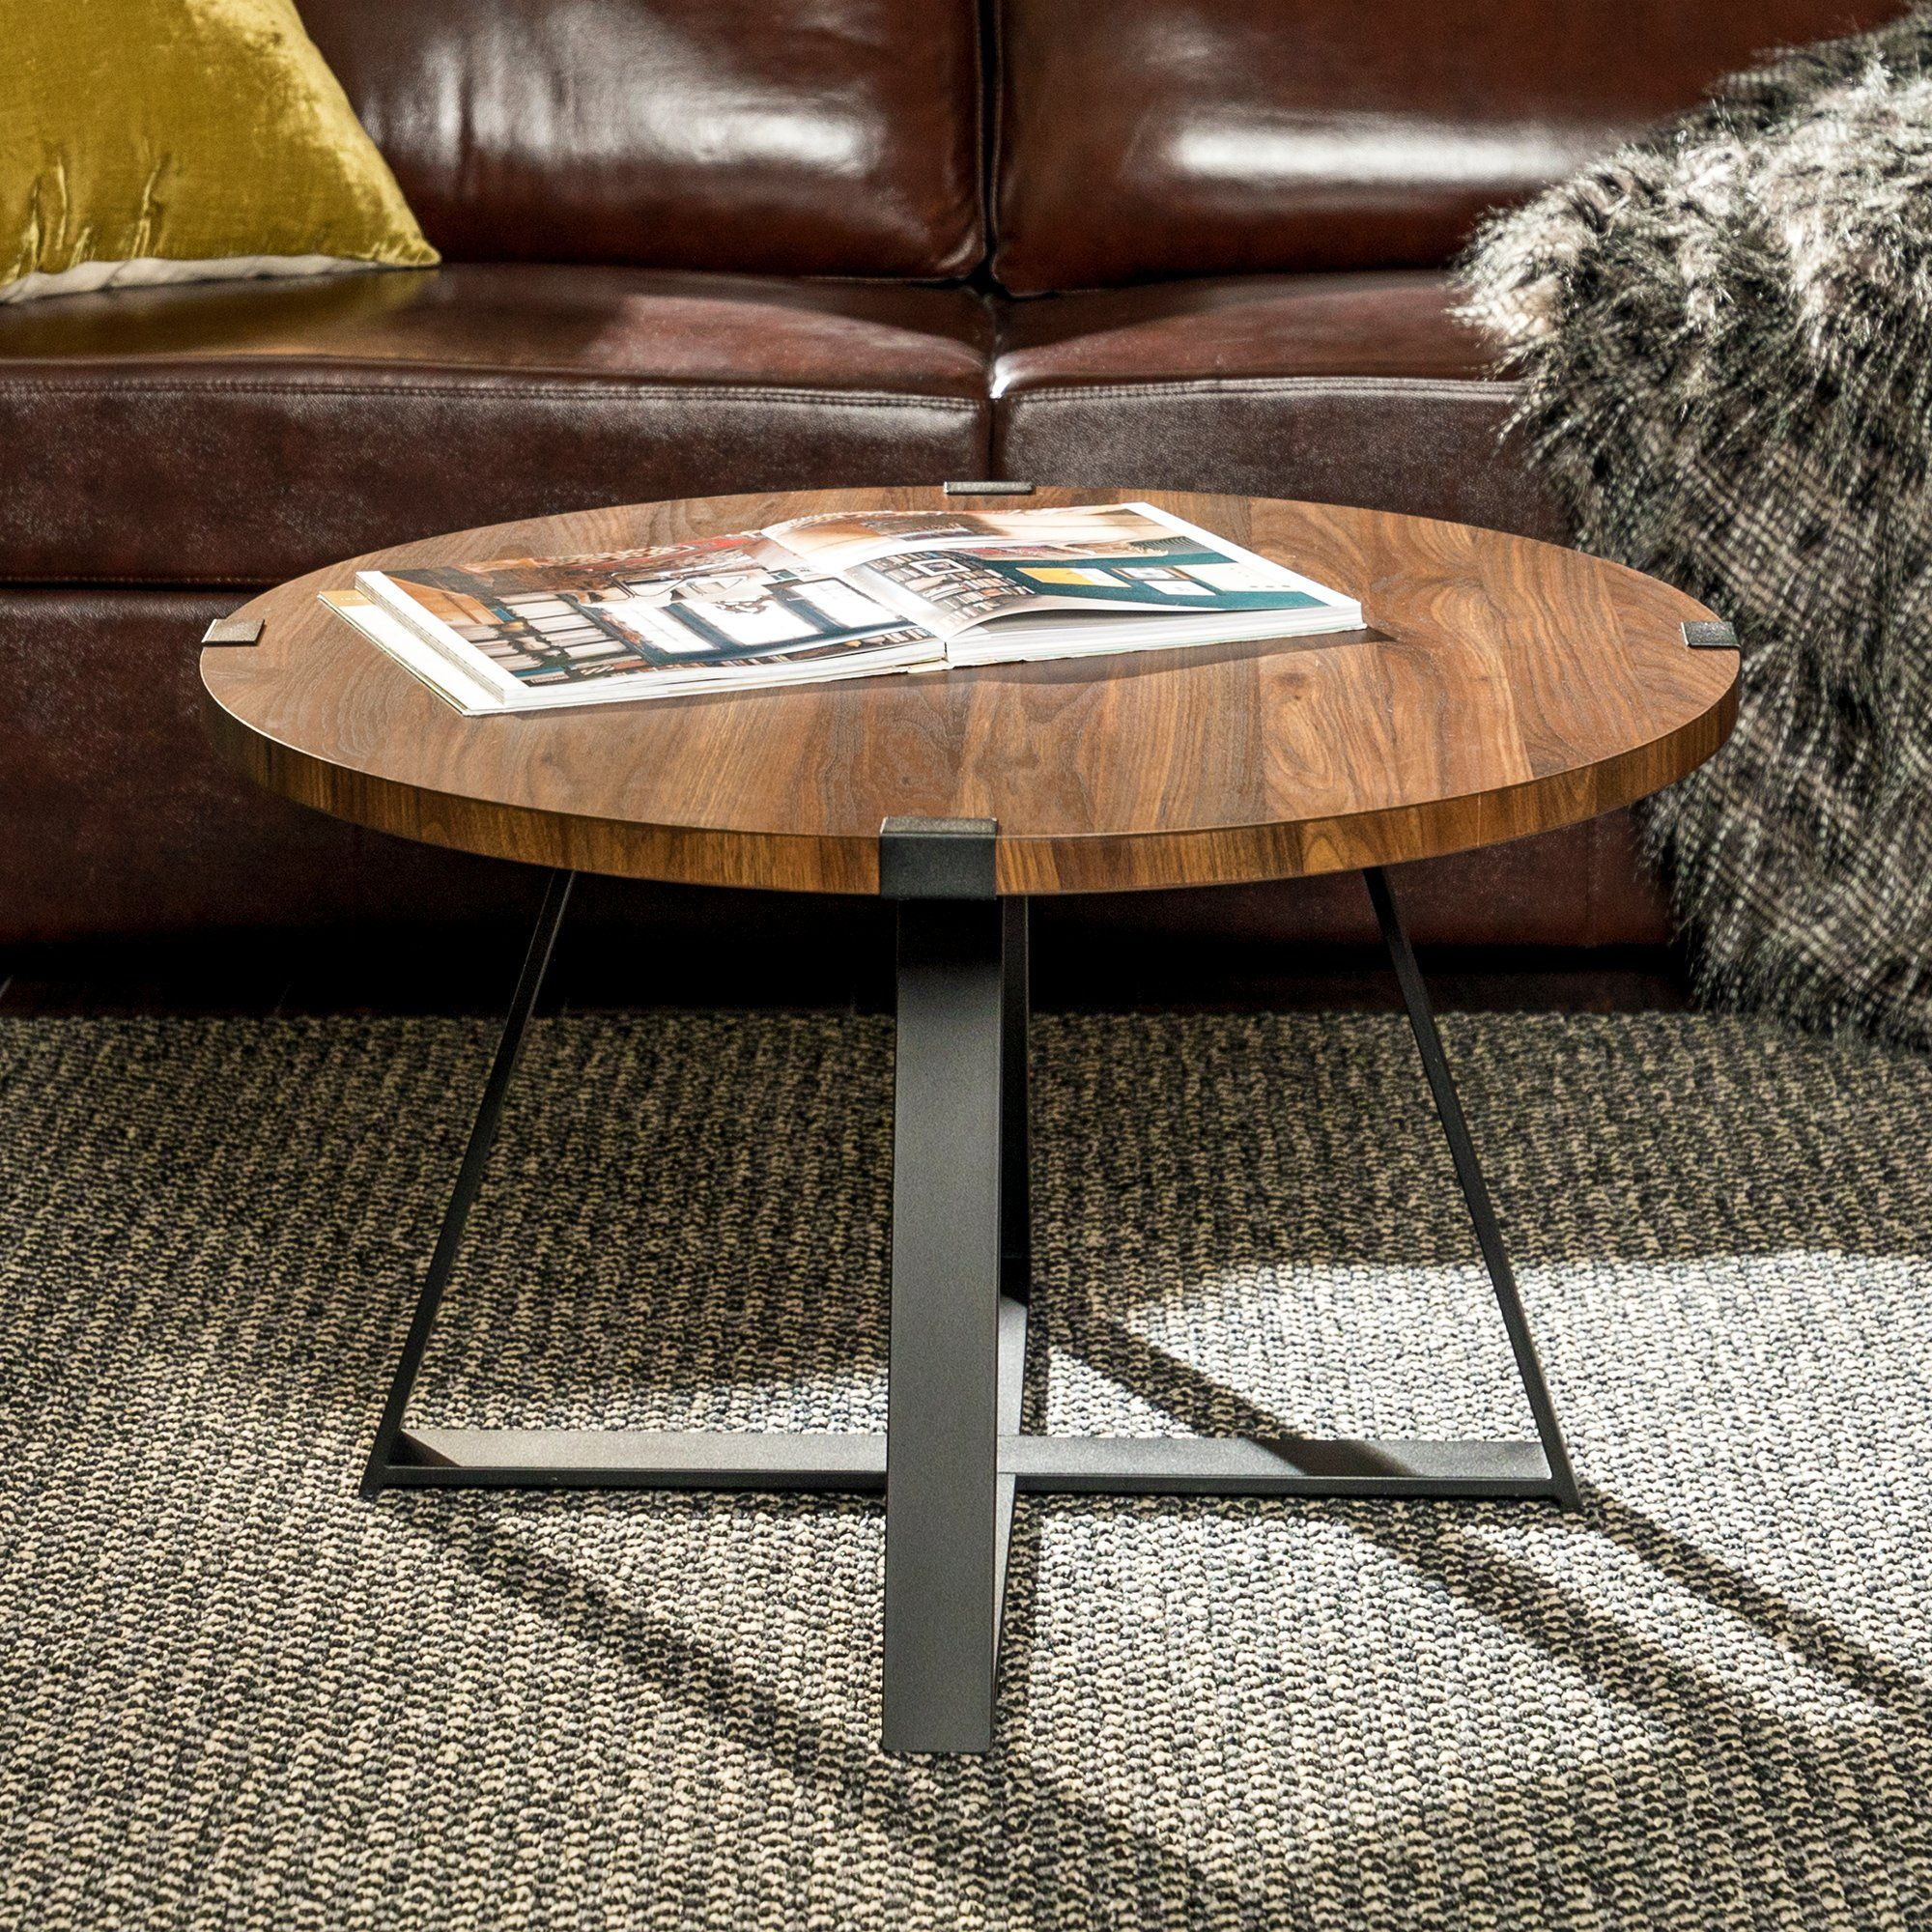 Rustic Round Coffee Table Dark Walnut Black In 2020 Living Room Accent Tables Coffee Table Wood Coffee Table Rustic [ 2000 x 2000 Pixel ]